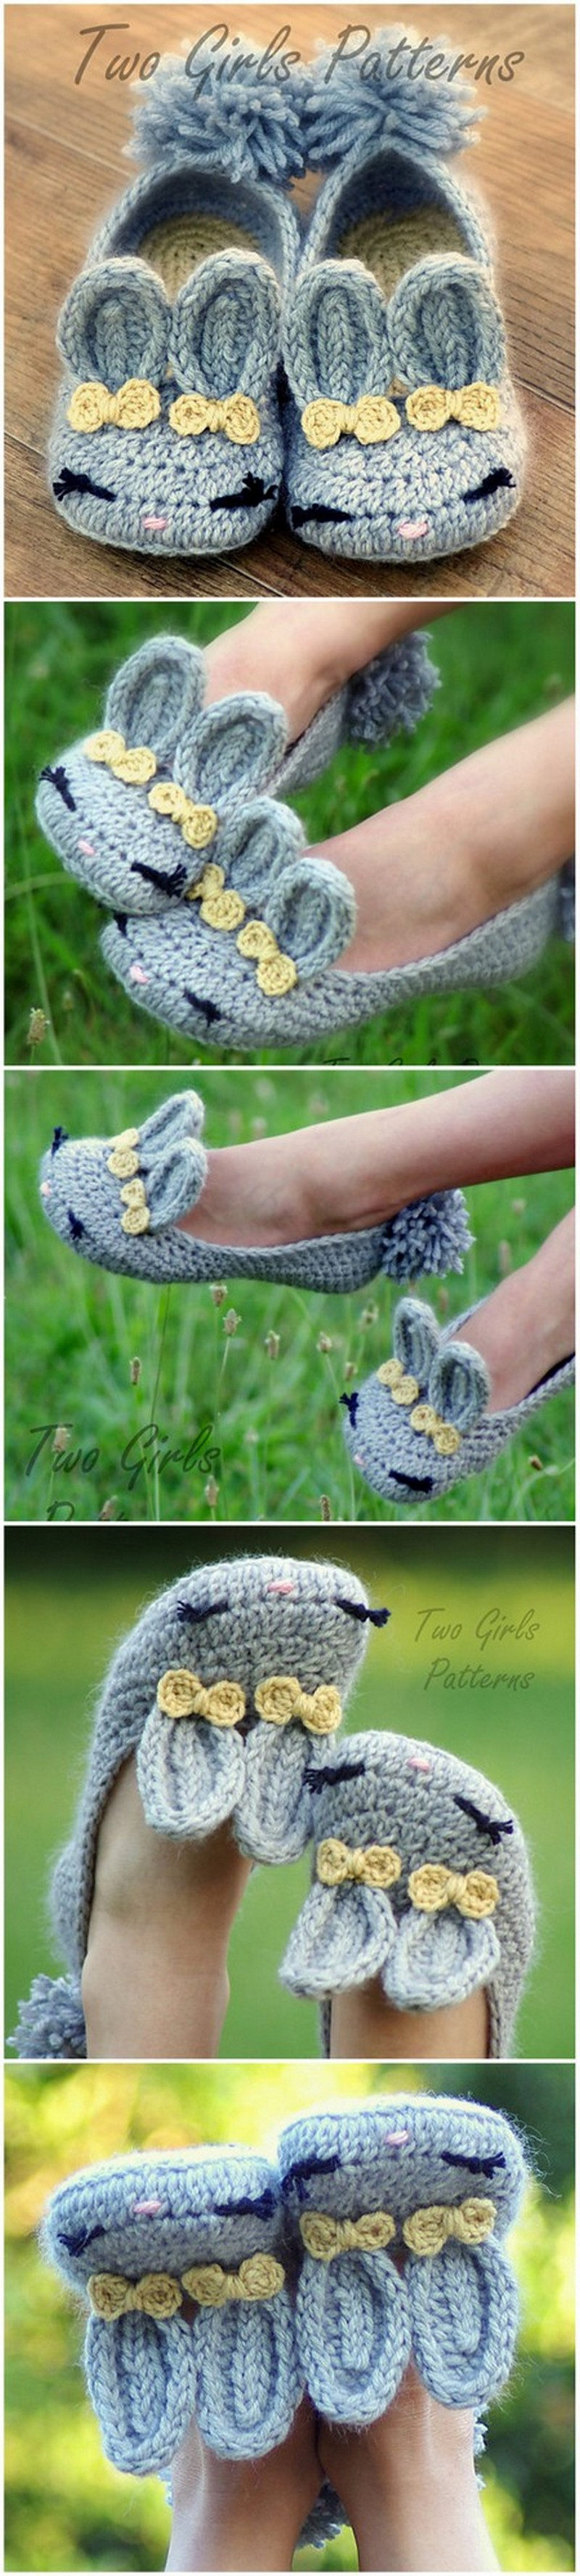 Crochet Slipper Pattern (23)